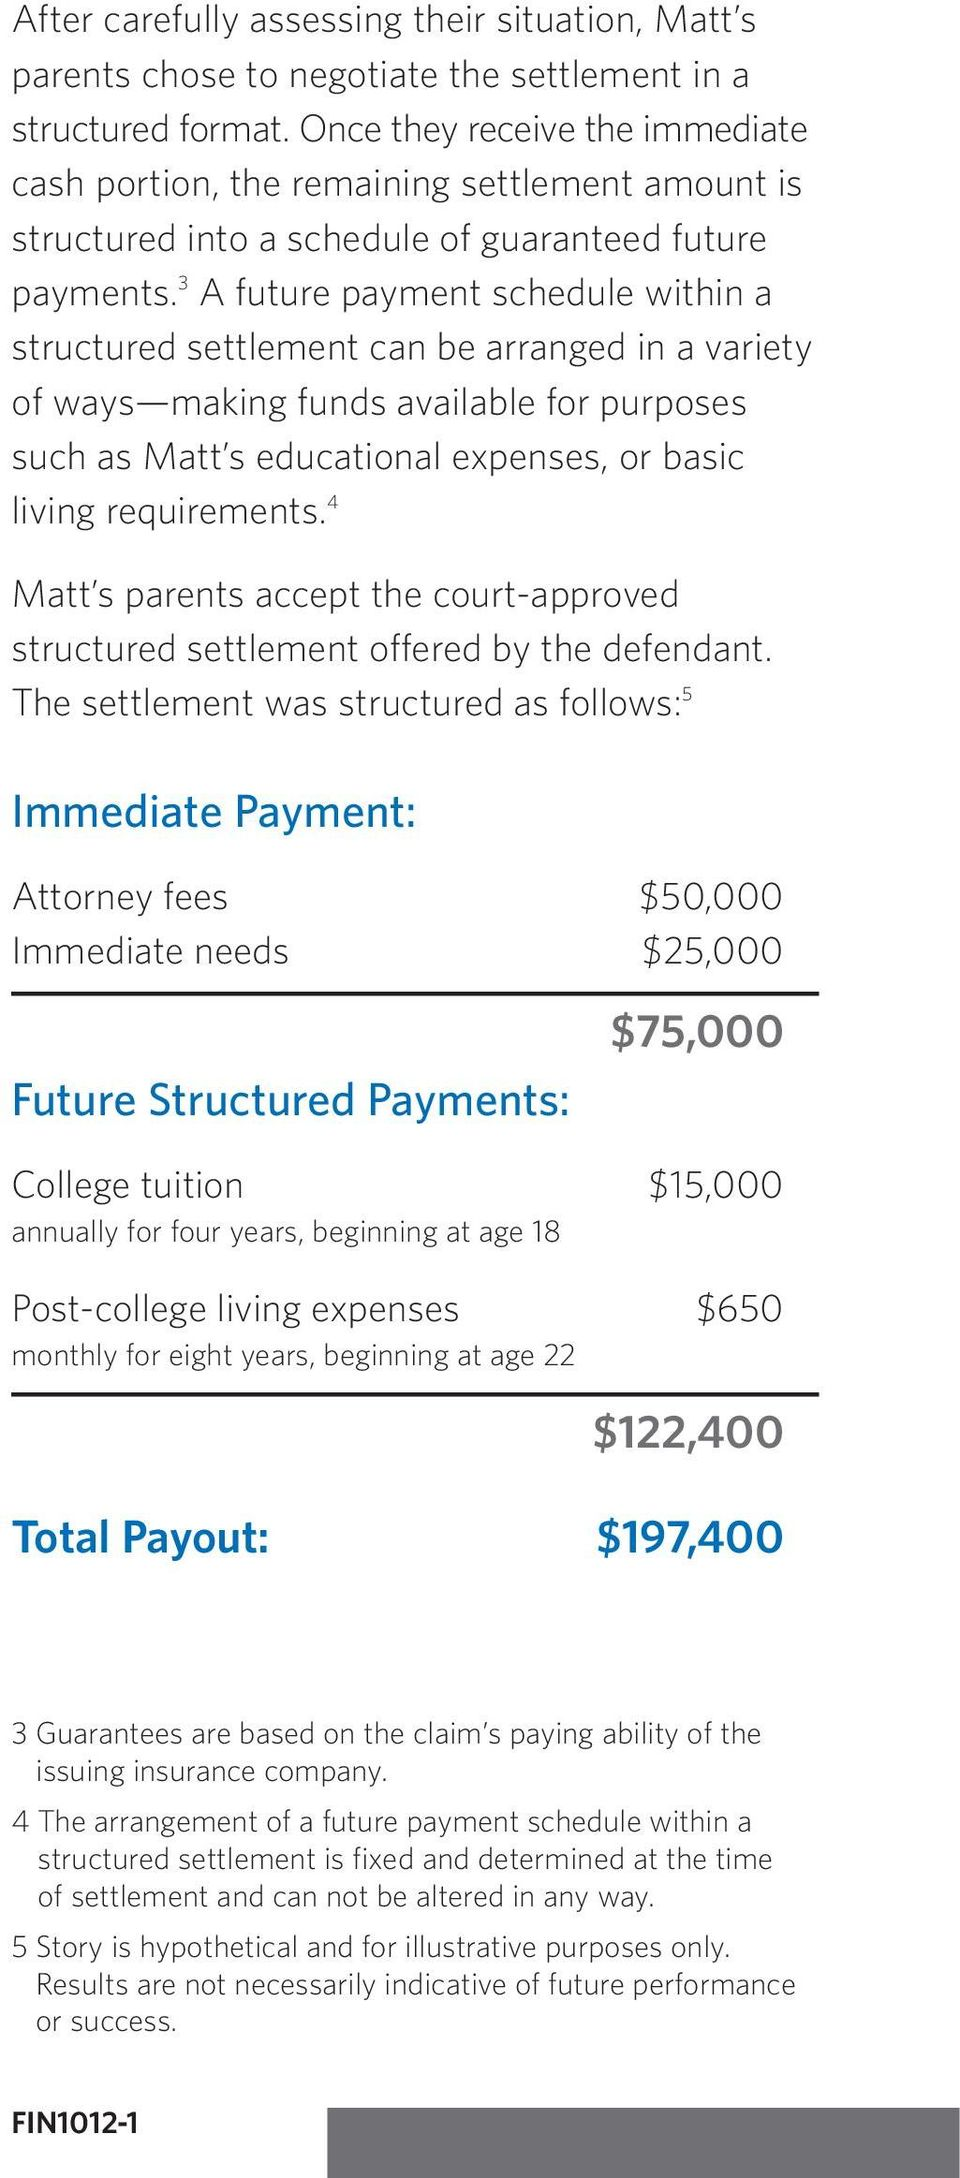 3 A future payment schedule within a structured settlement can be arranged in a variety of ways making funds available for purposes such as Matt s educational expenses, or basic living requirements.